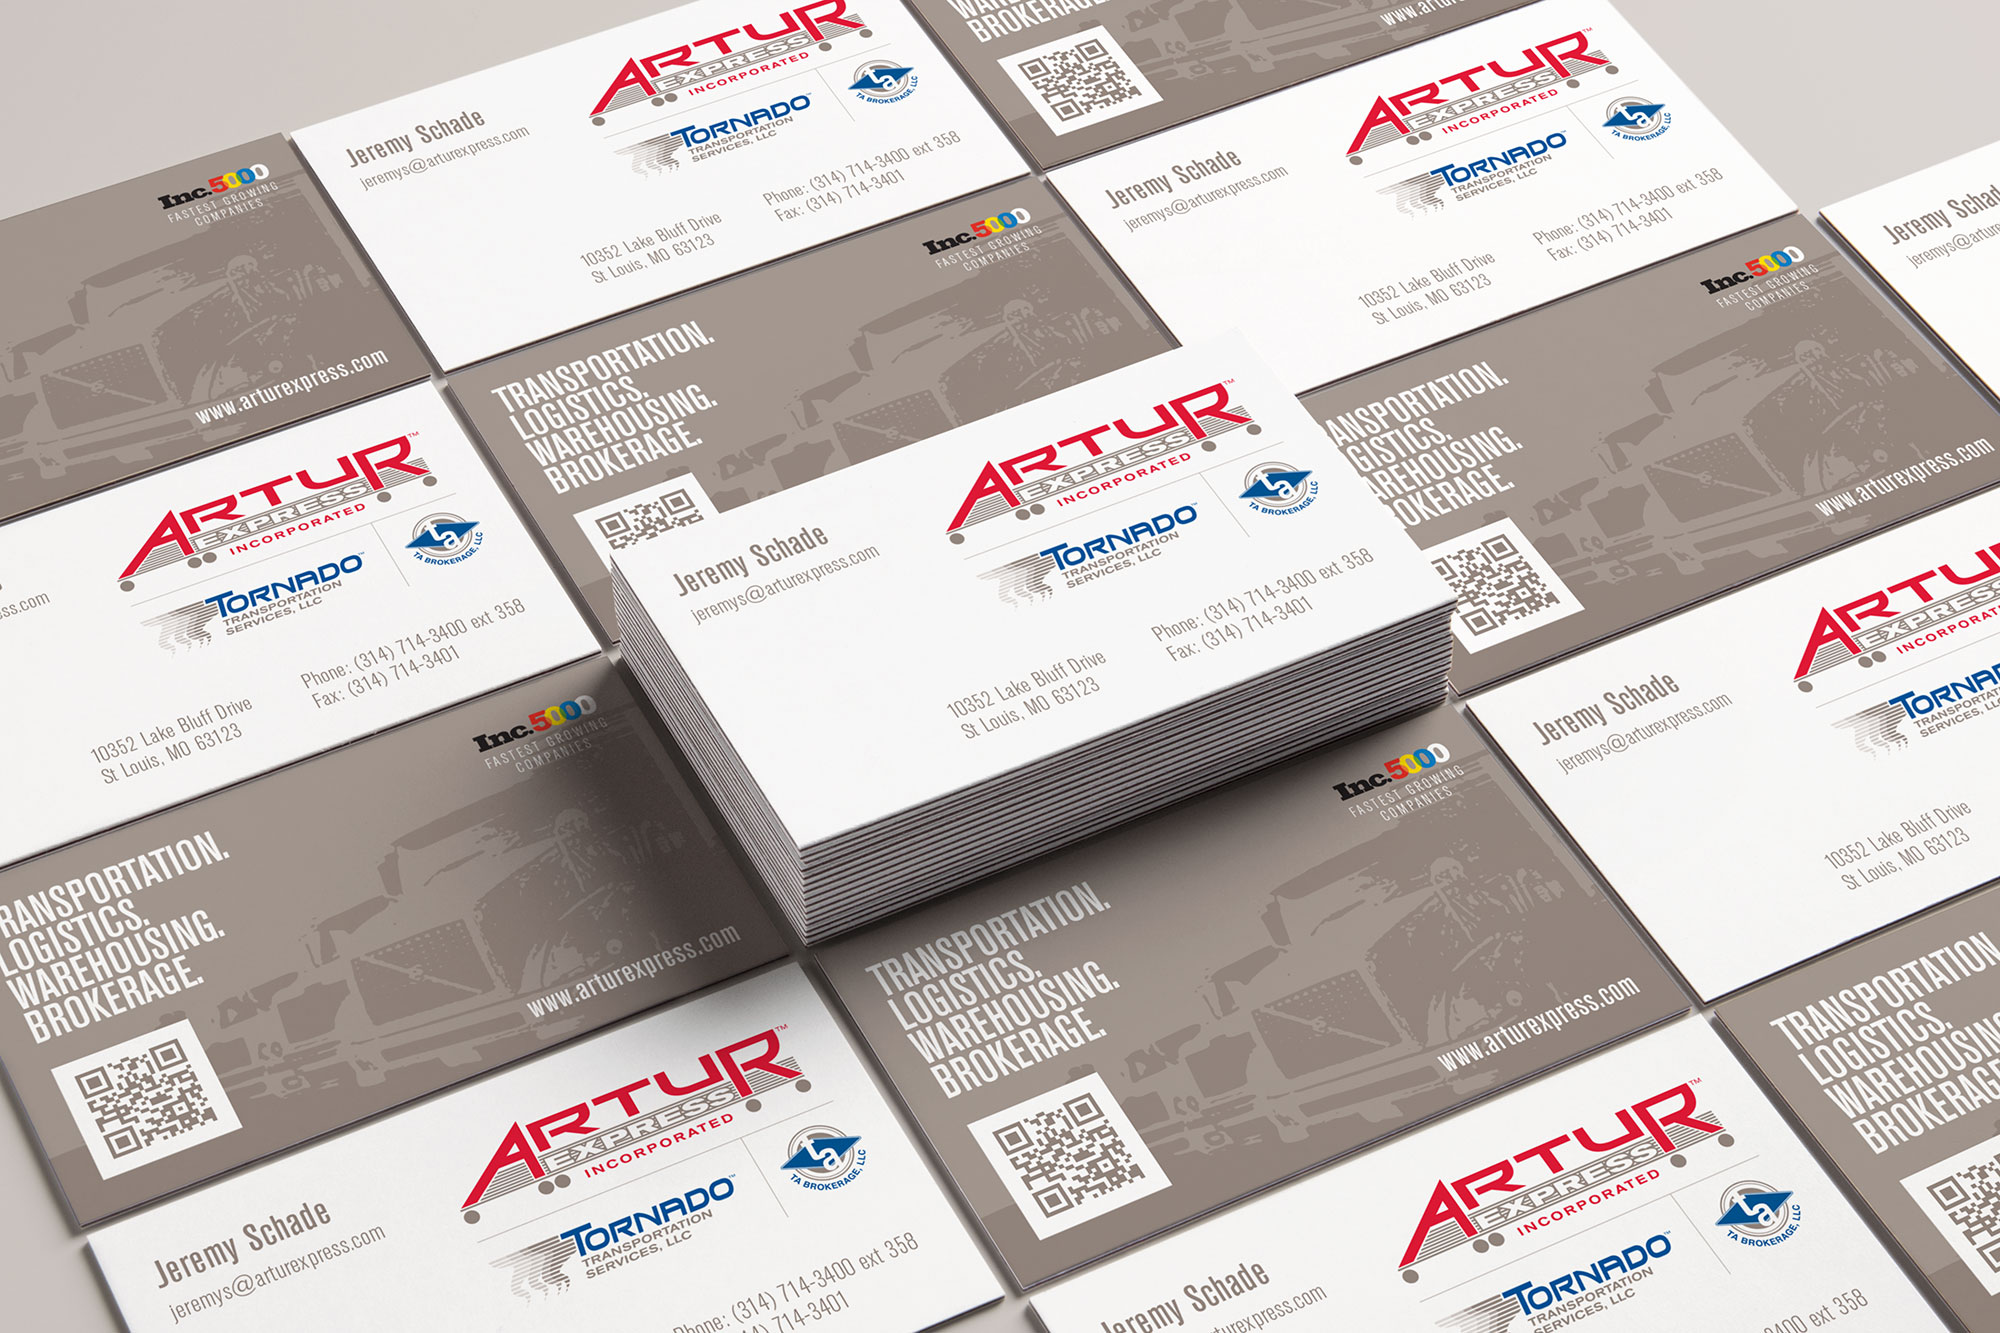 artur business card stacks